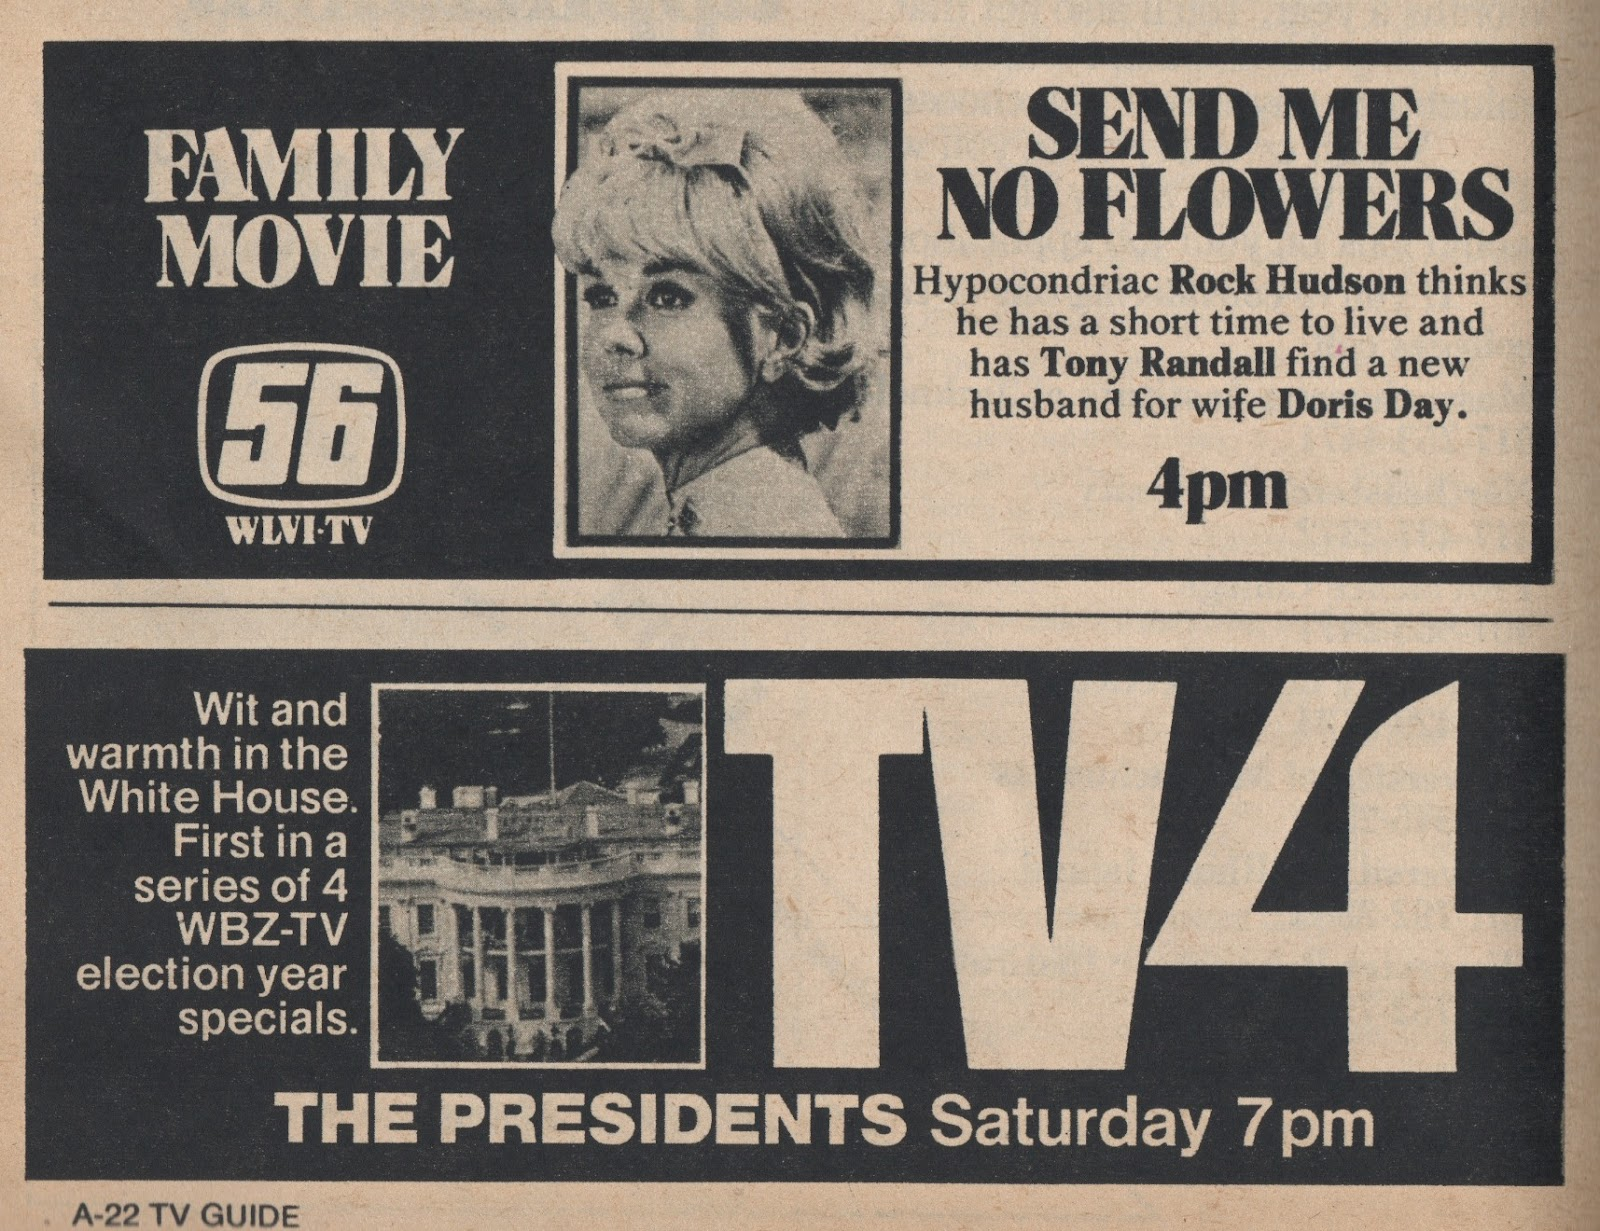 TV Guide Time Machine: Happy Mother's Day (1976) from WLVI